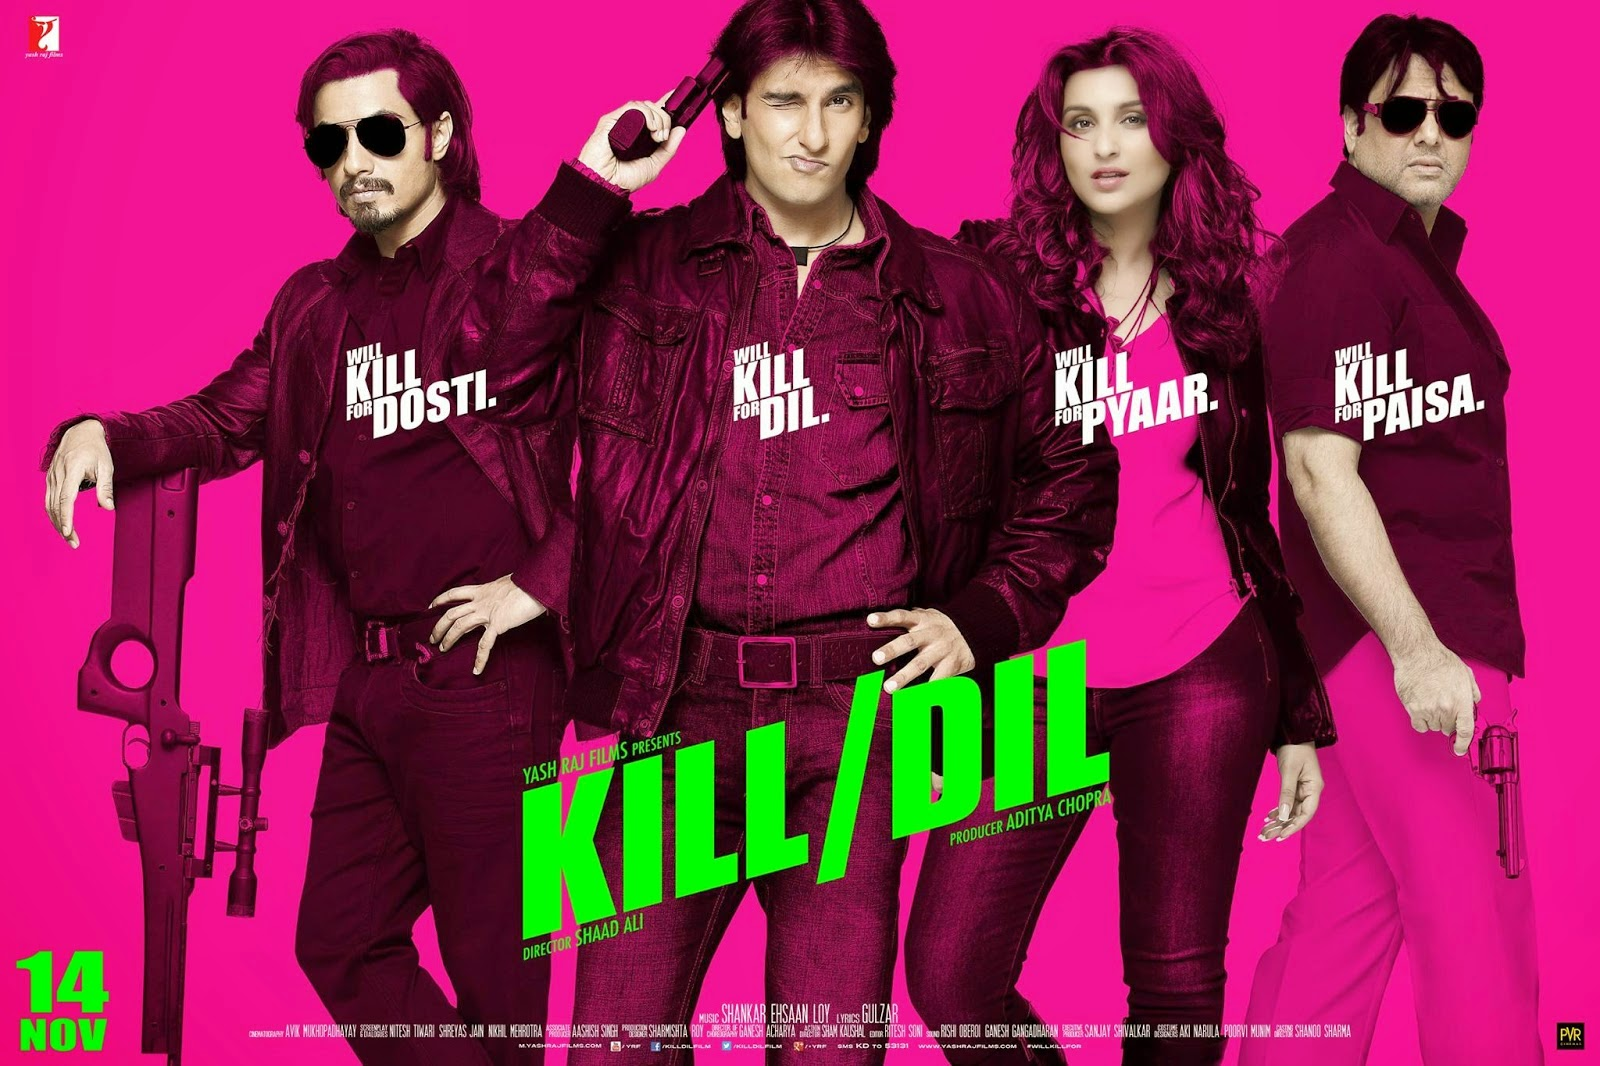 Sweeta - Adnan Sami - Kill Dil - Song Lyrics | MP3 VIDEO DOWNLOAD